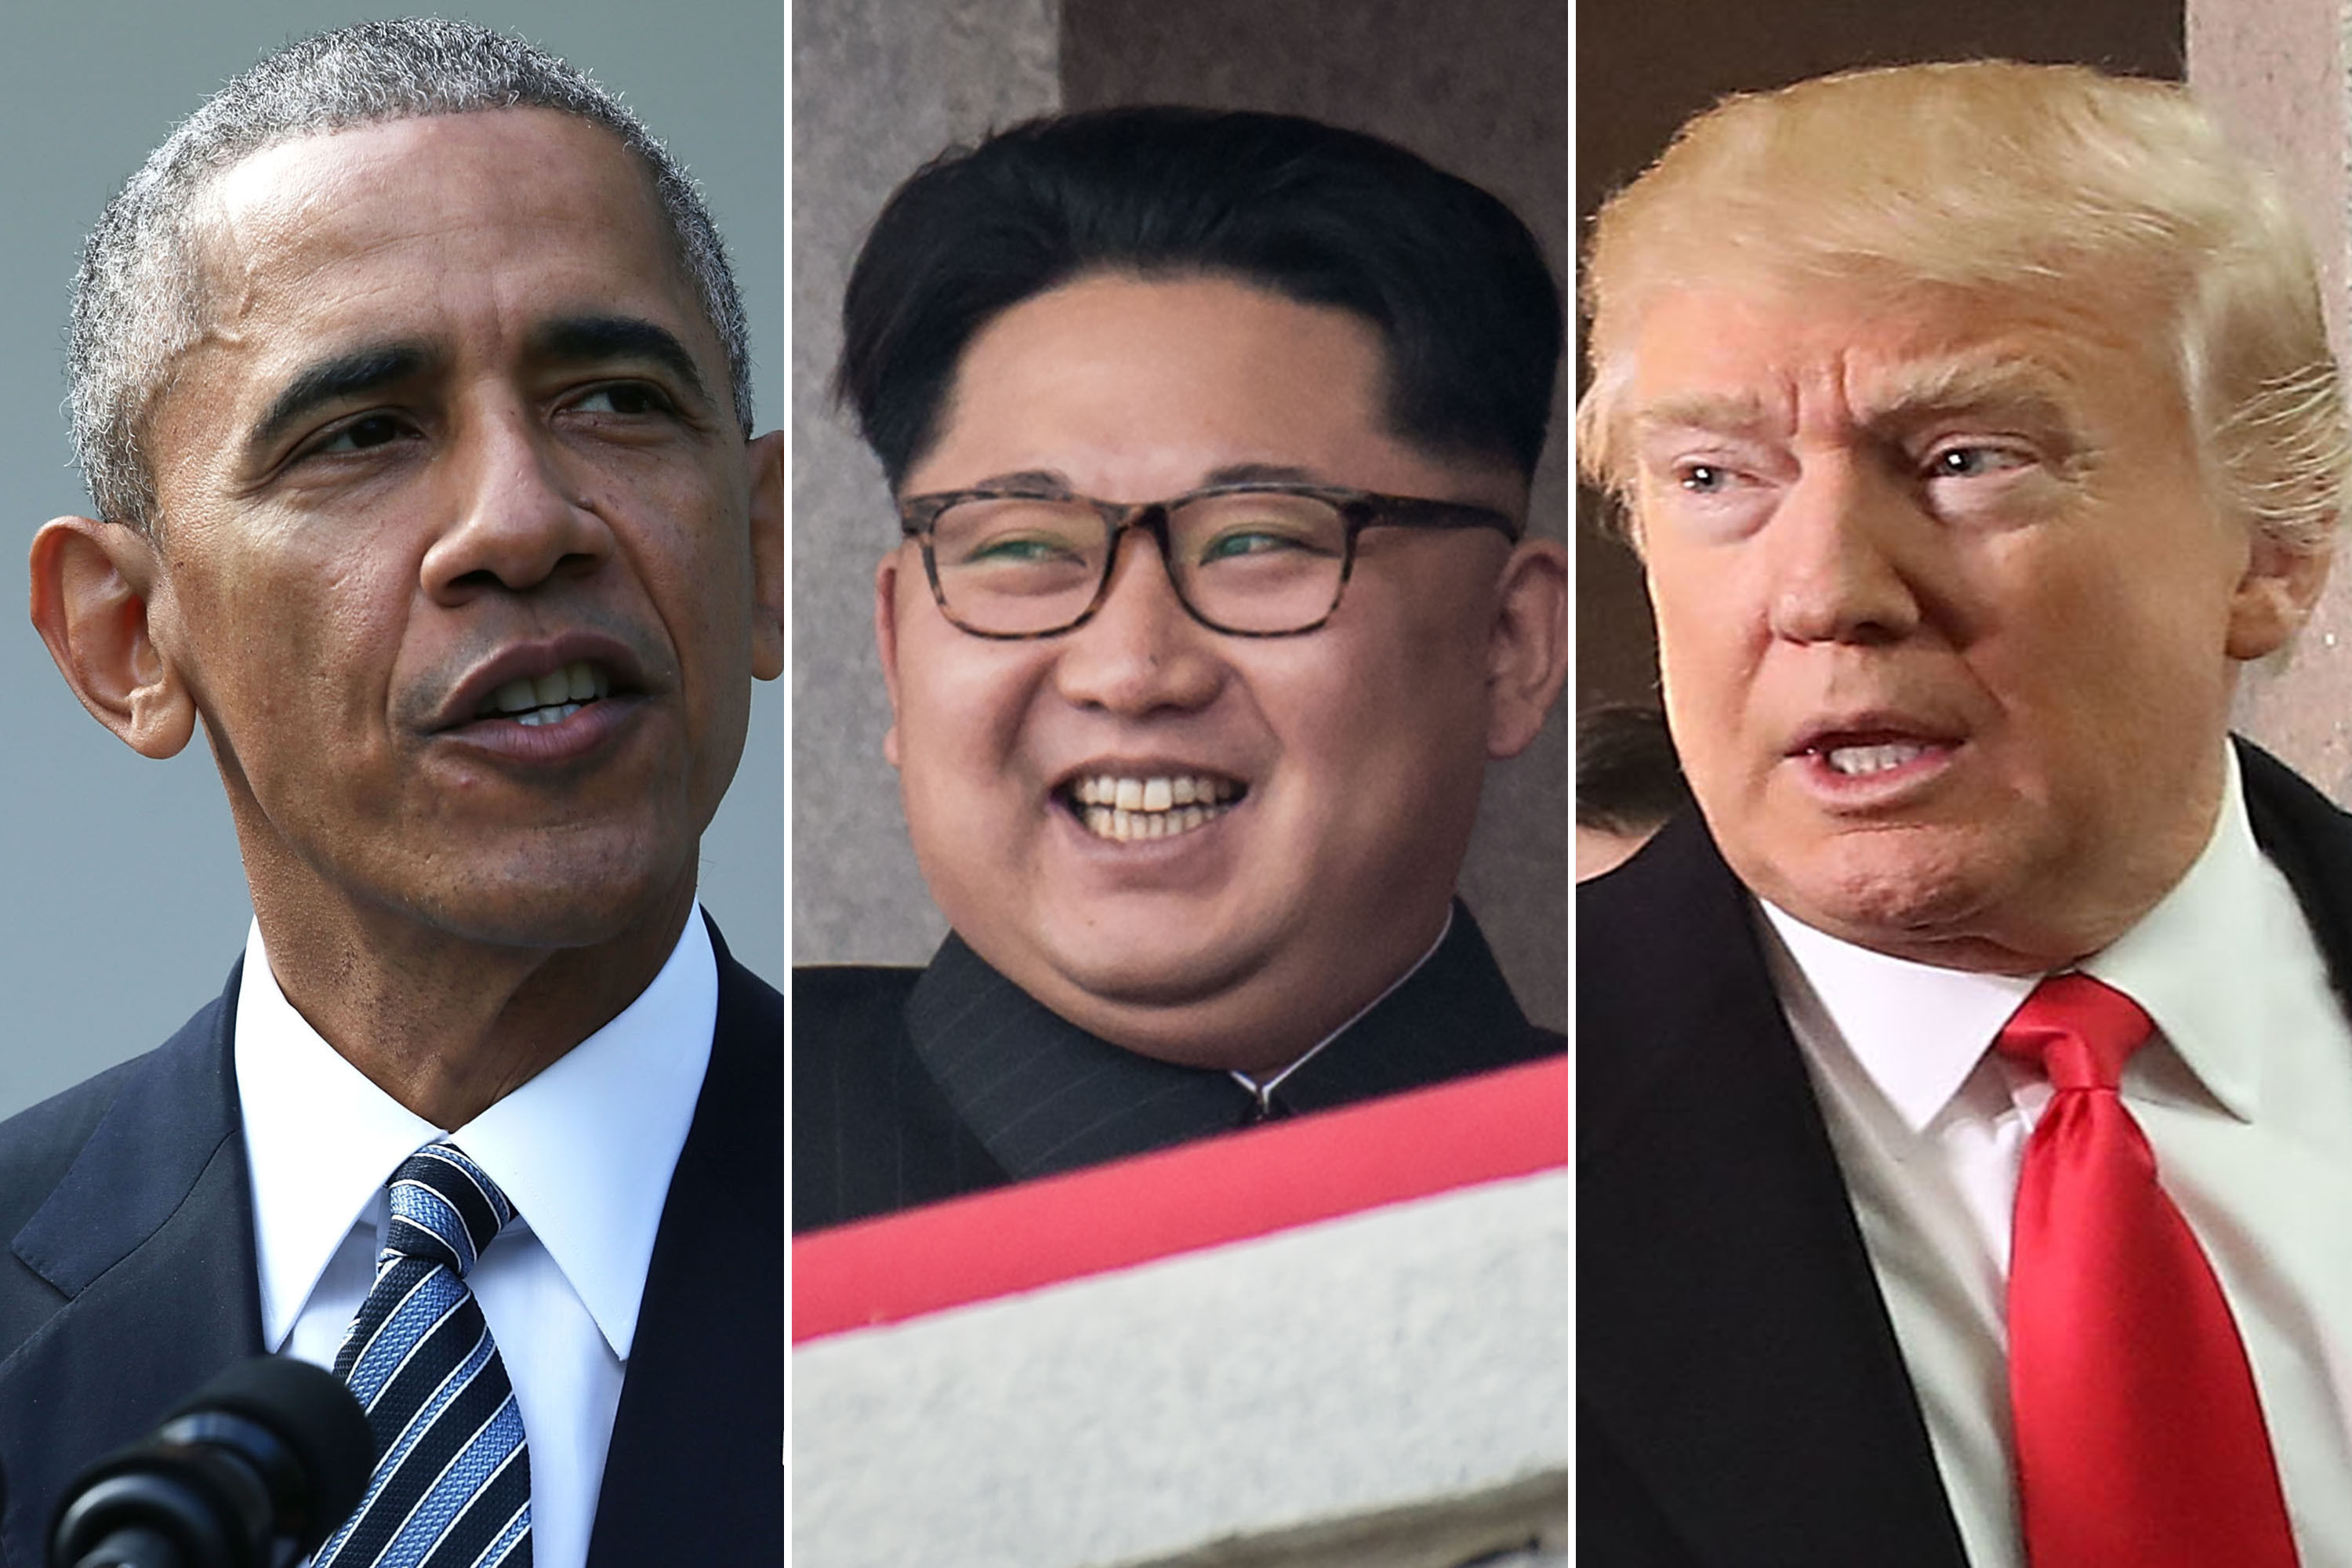 Barack Obama, Kim Jong-Un and Donald Trump